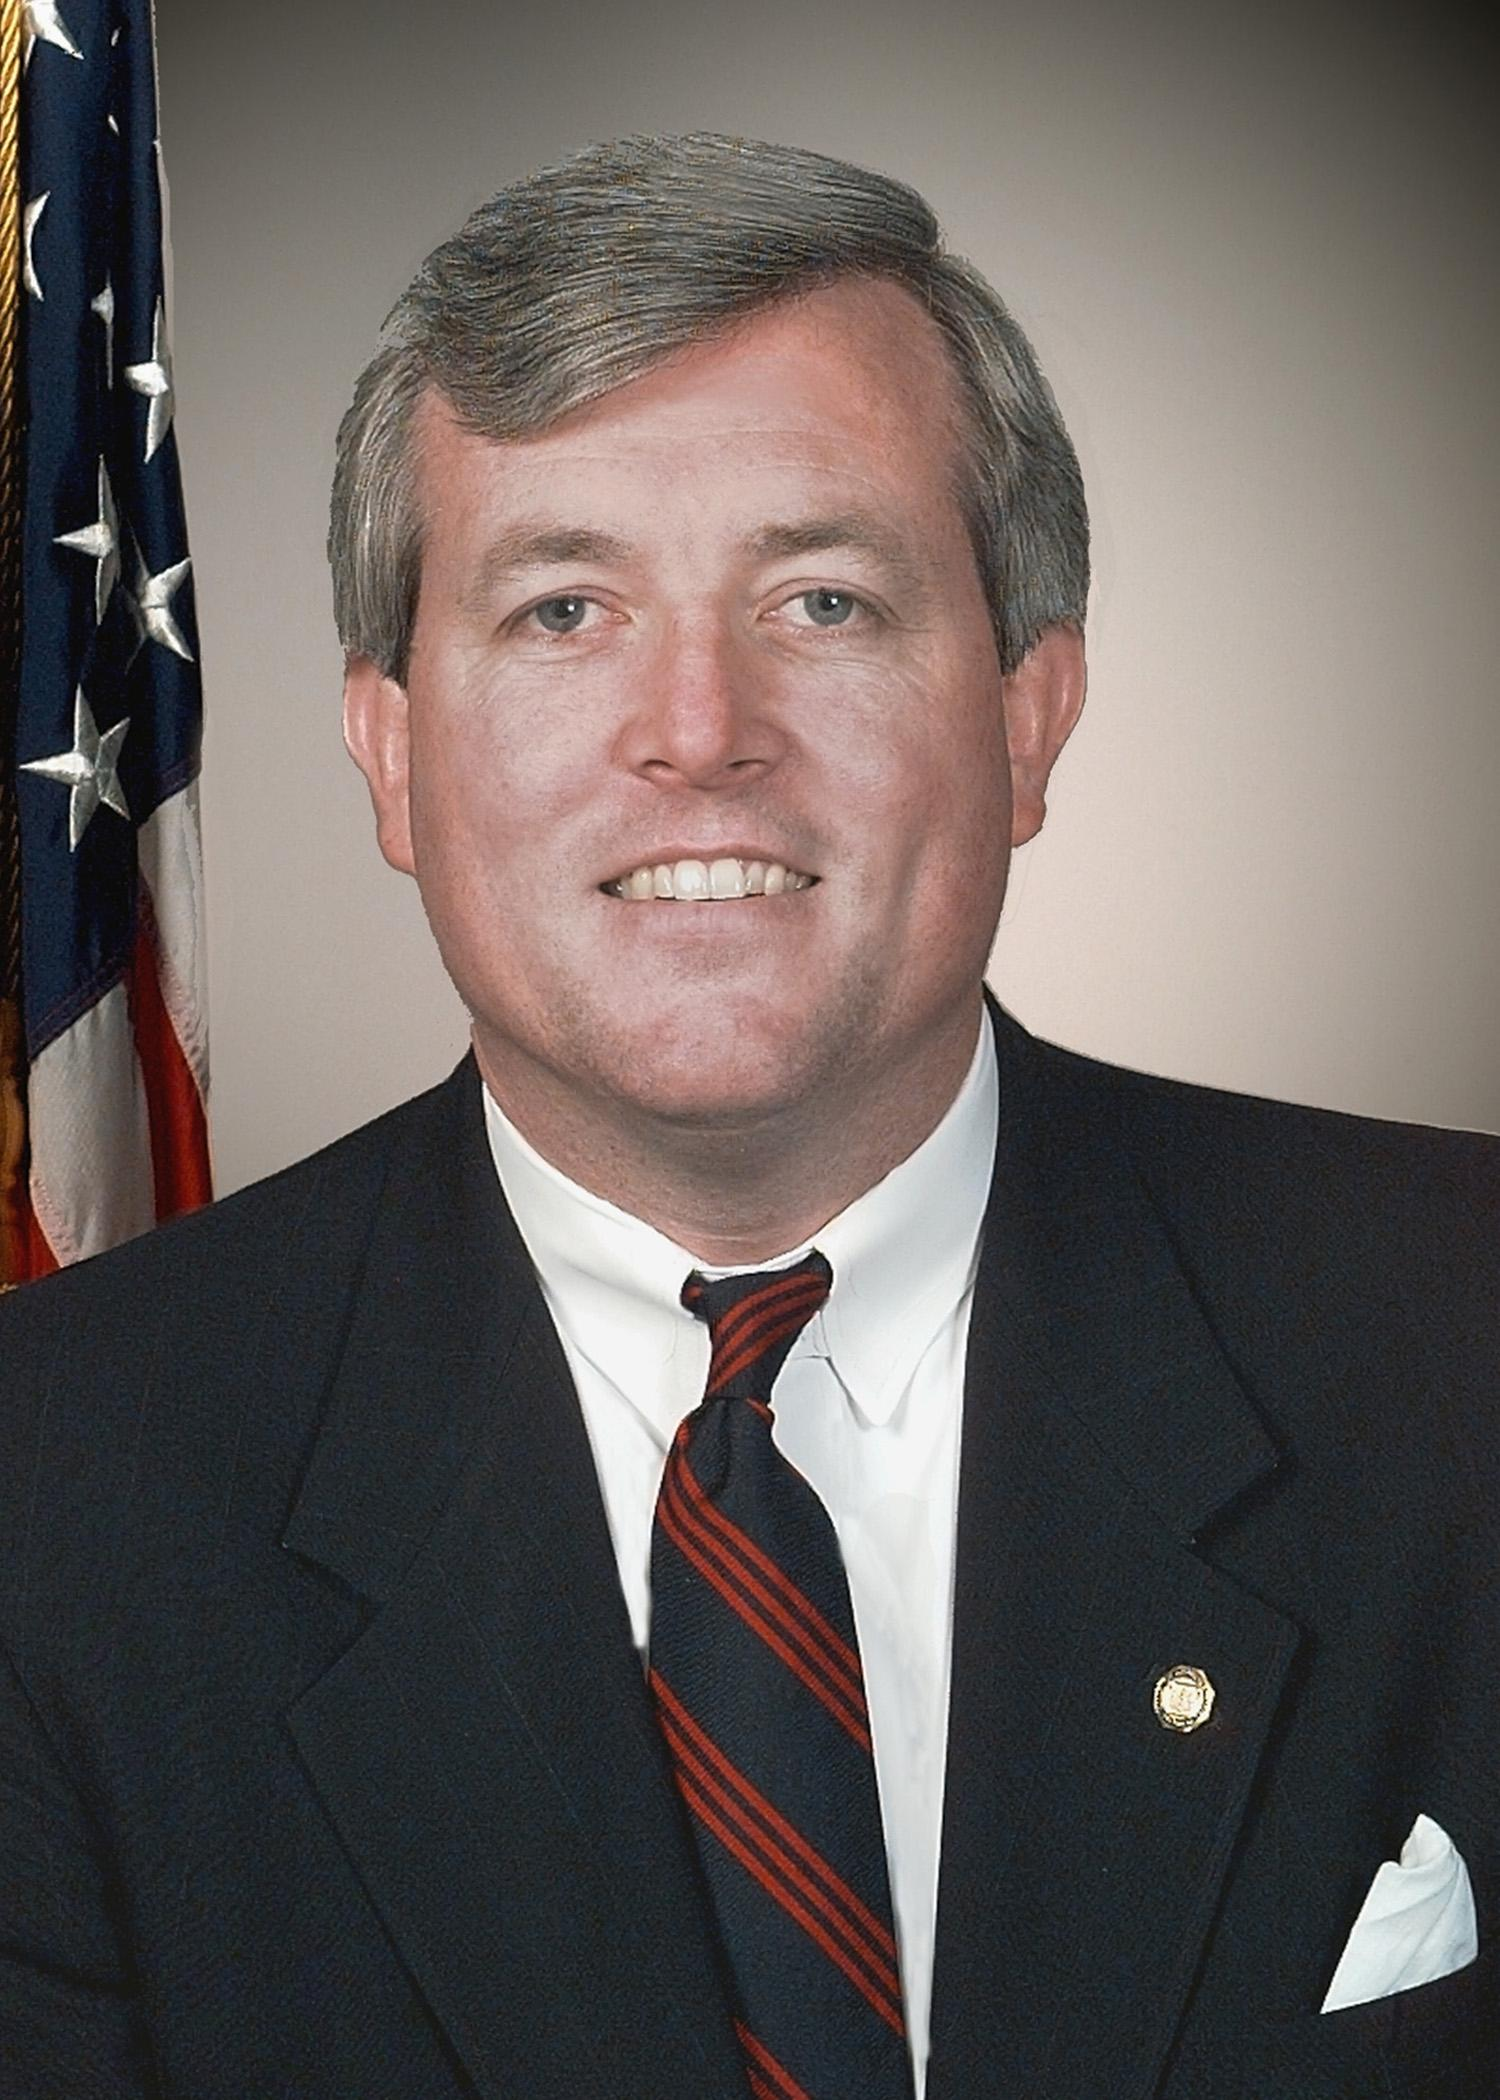 George T. Kenney GEORGE T KENNEY JR PA House of Representatives